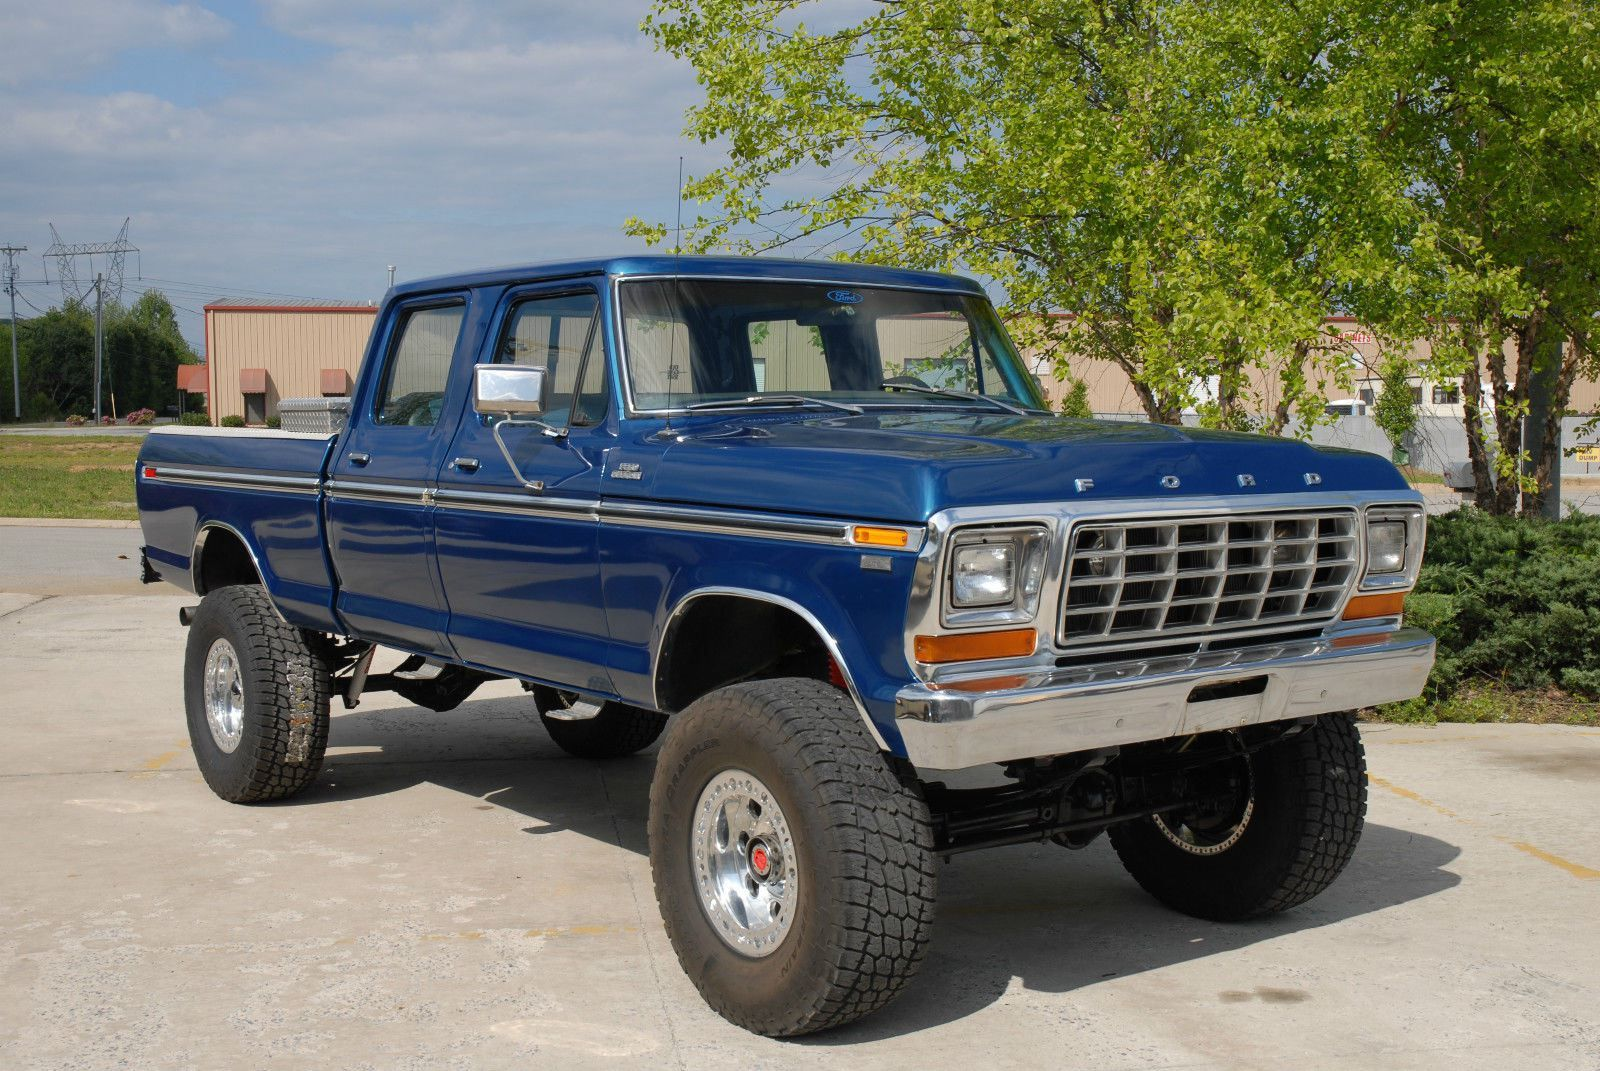 1978 Ford F250 Crew Cab 4x4 | Muscle 68 | Ford pickup trucks